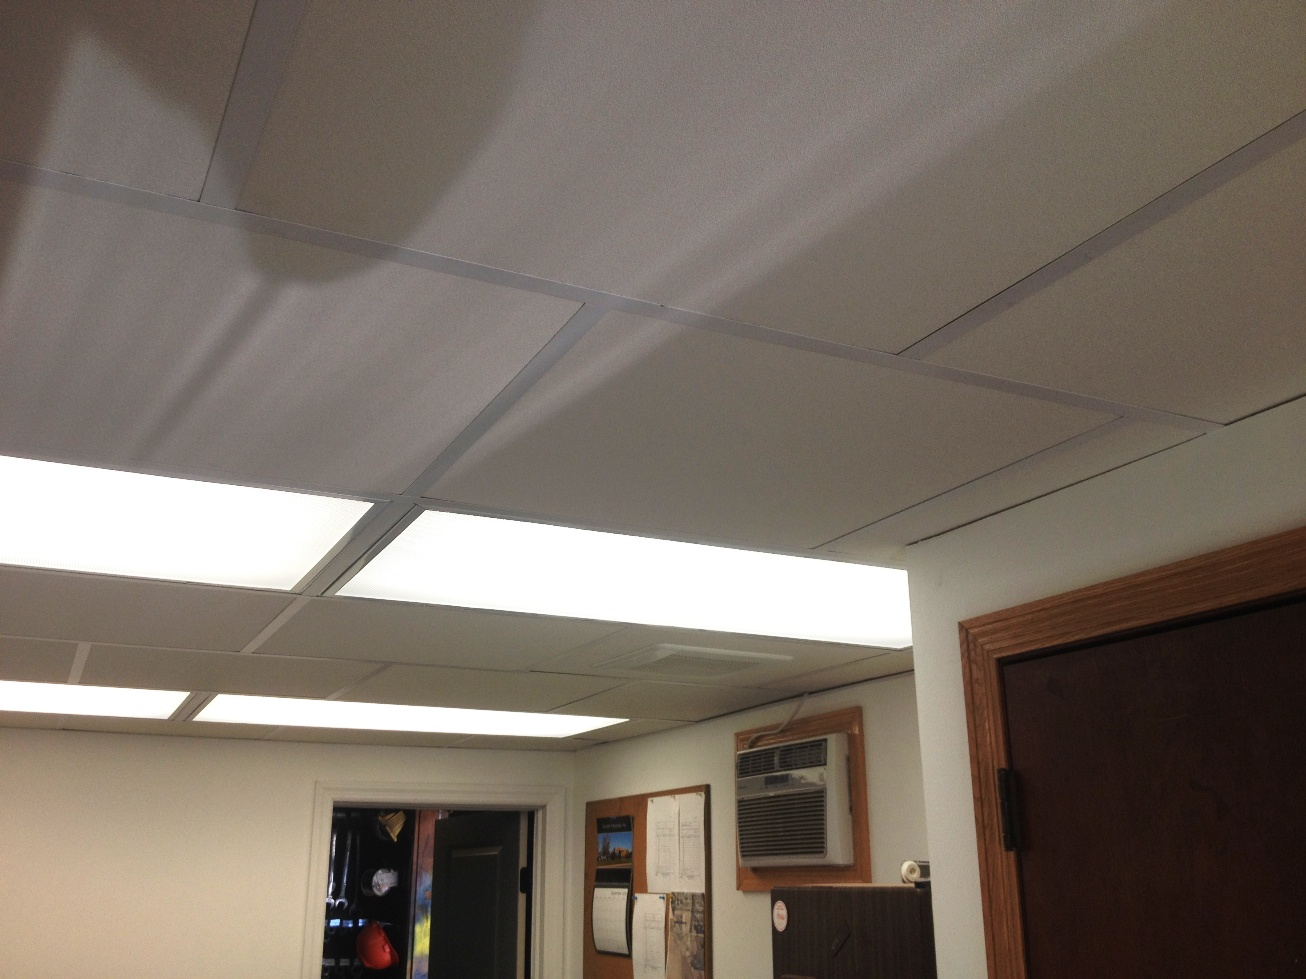 Insulating fiberglass ceiling tiles with high nrc value panel thickness dailygadgetfo Choice Image